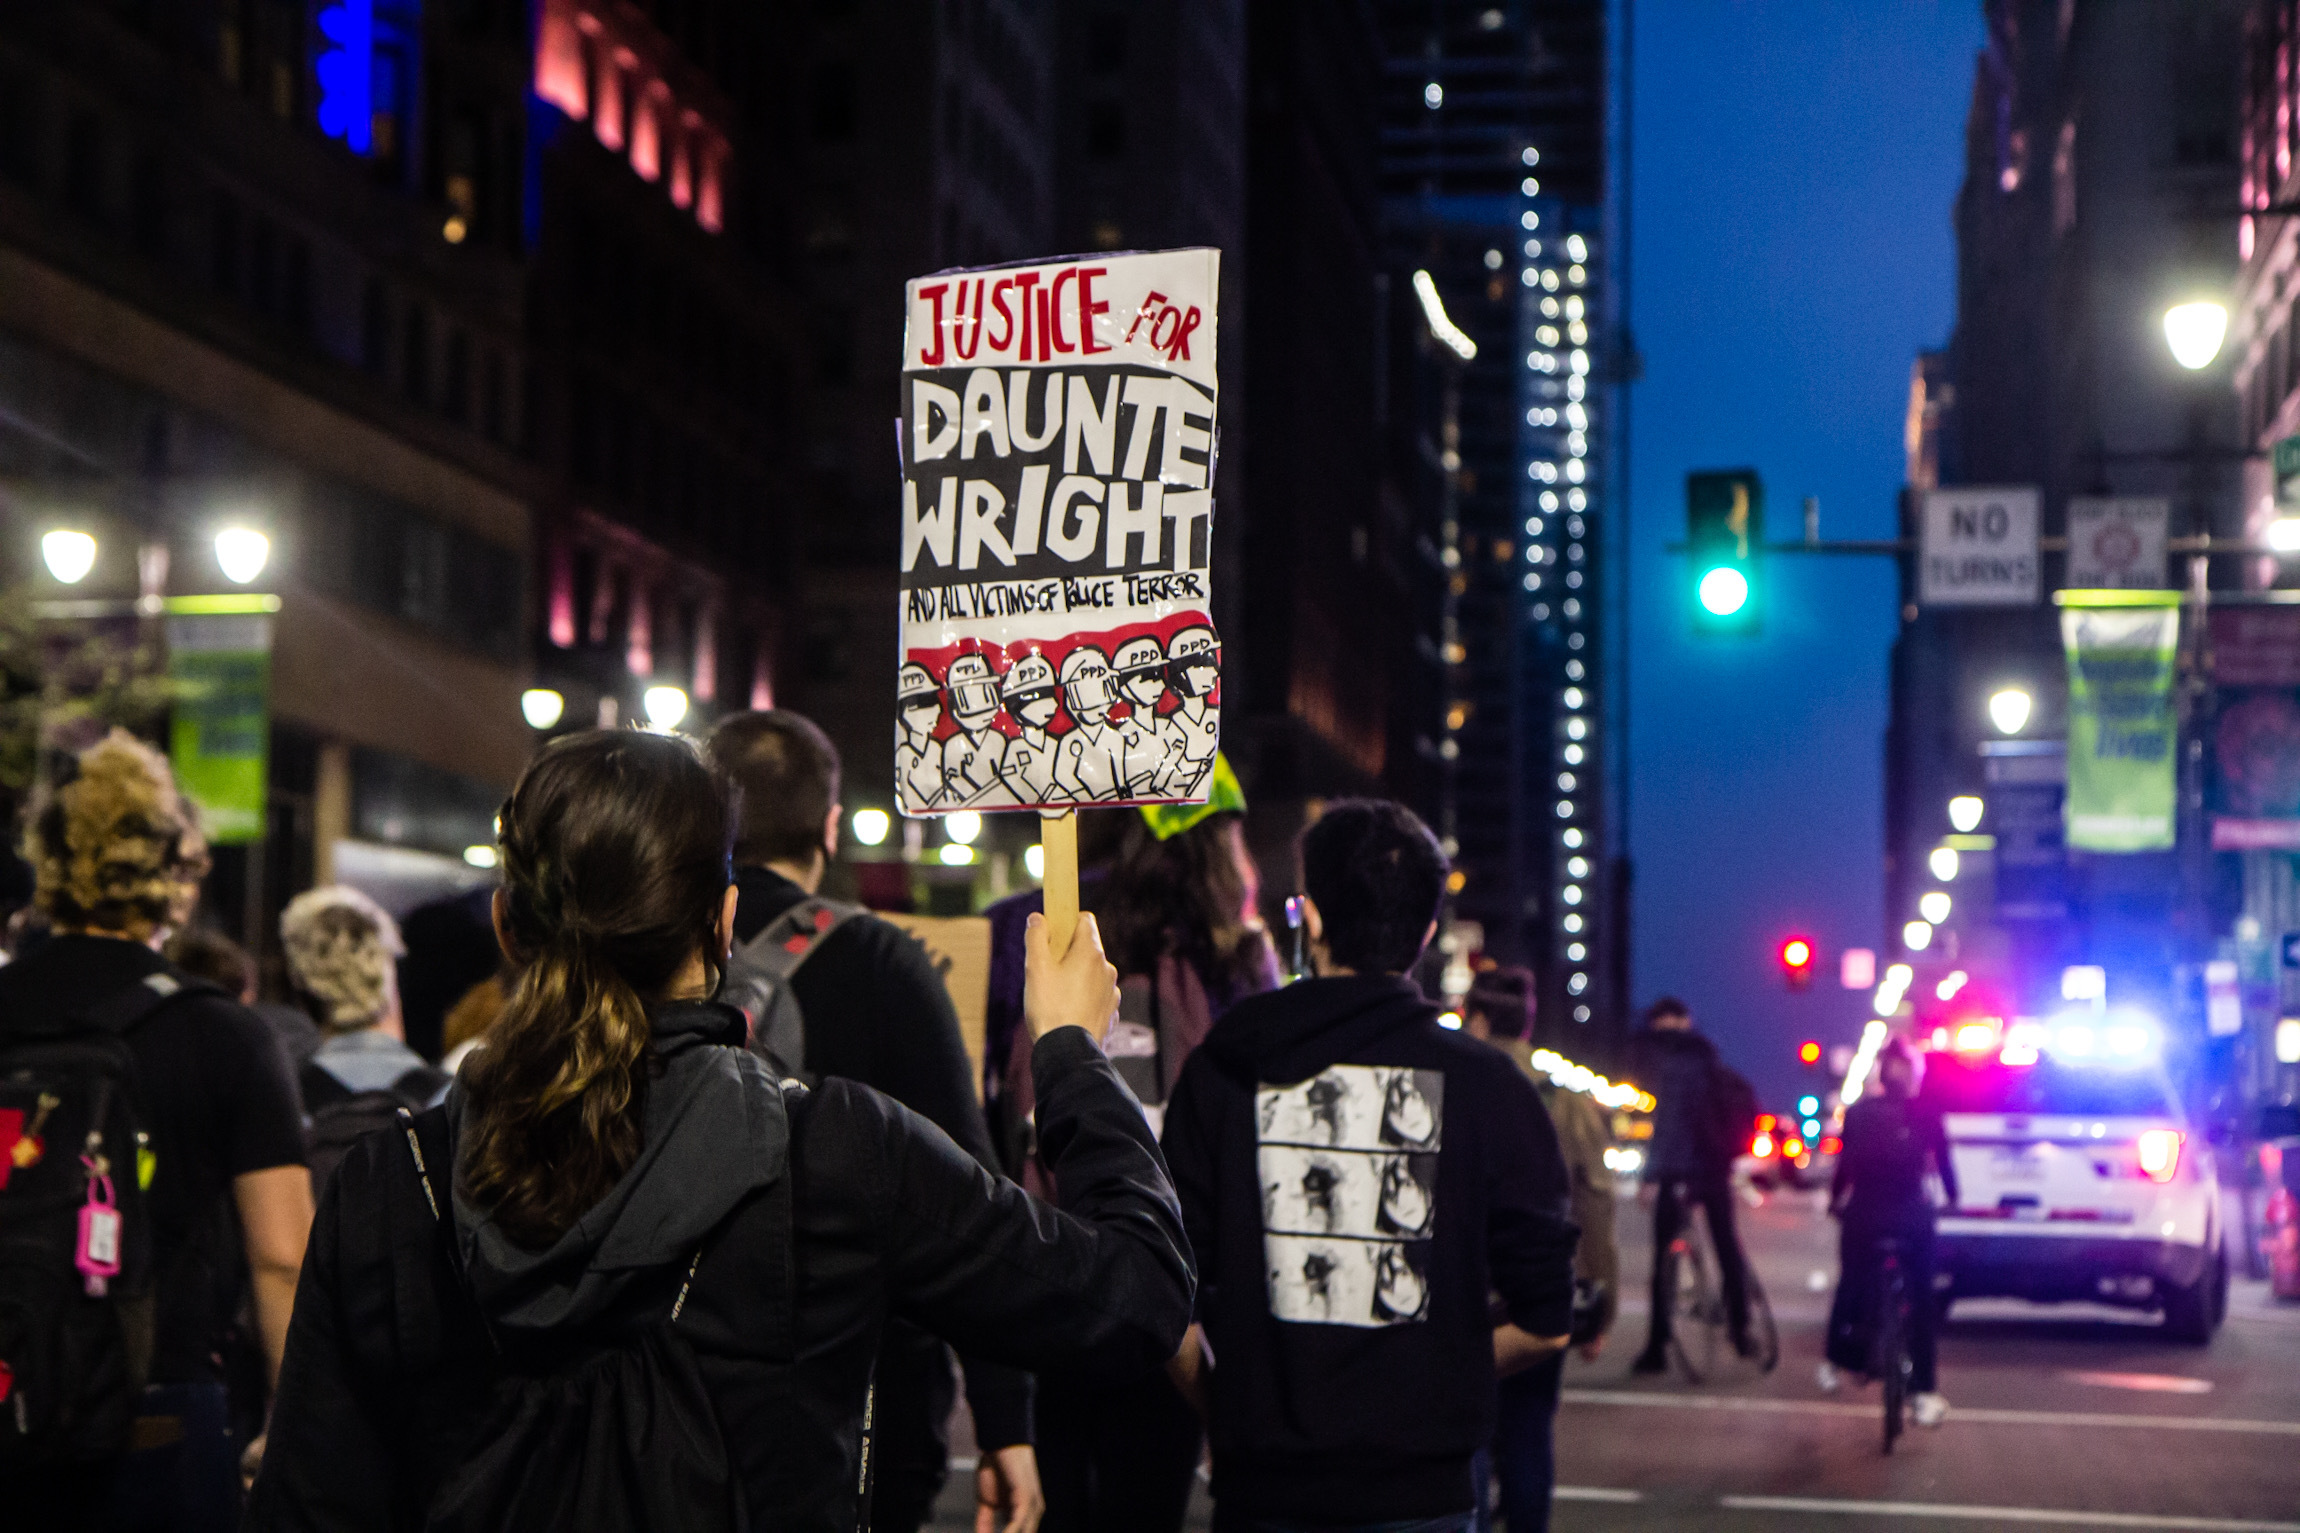 Protesters demanding justice for Daunte Wright, a 20-year-old Black man killed by police outside Minneapolis marched through Center City Philadelphia on April 13, 2021. (Kimberly Paynter/WHYY)